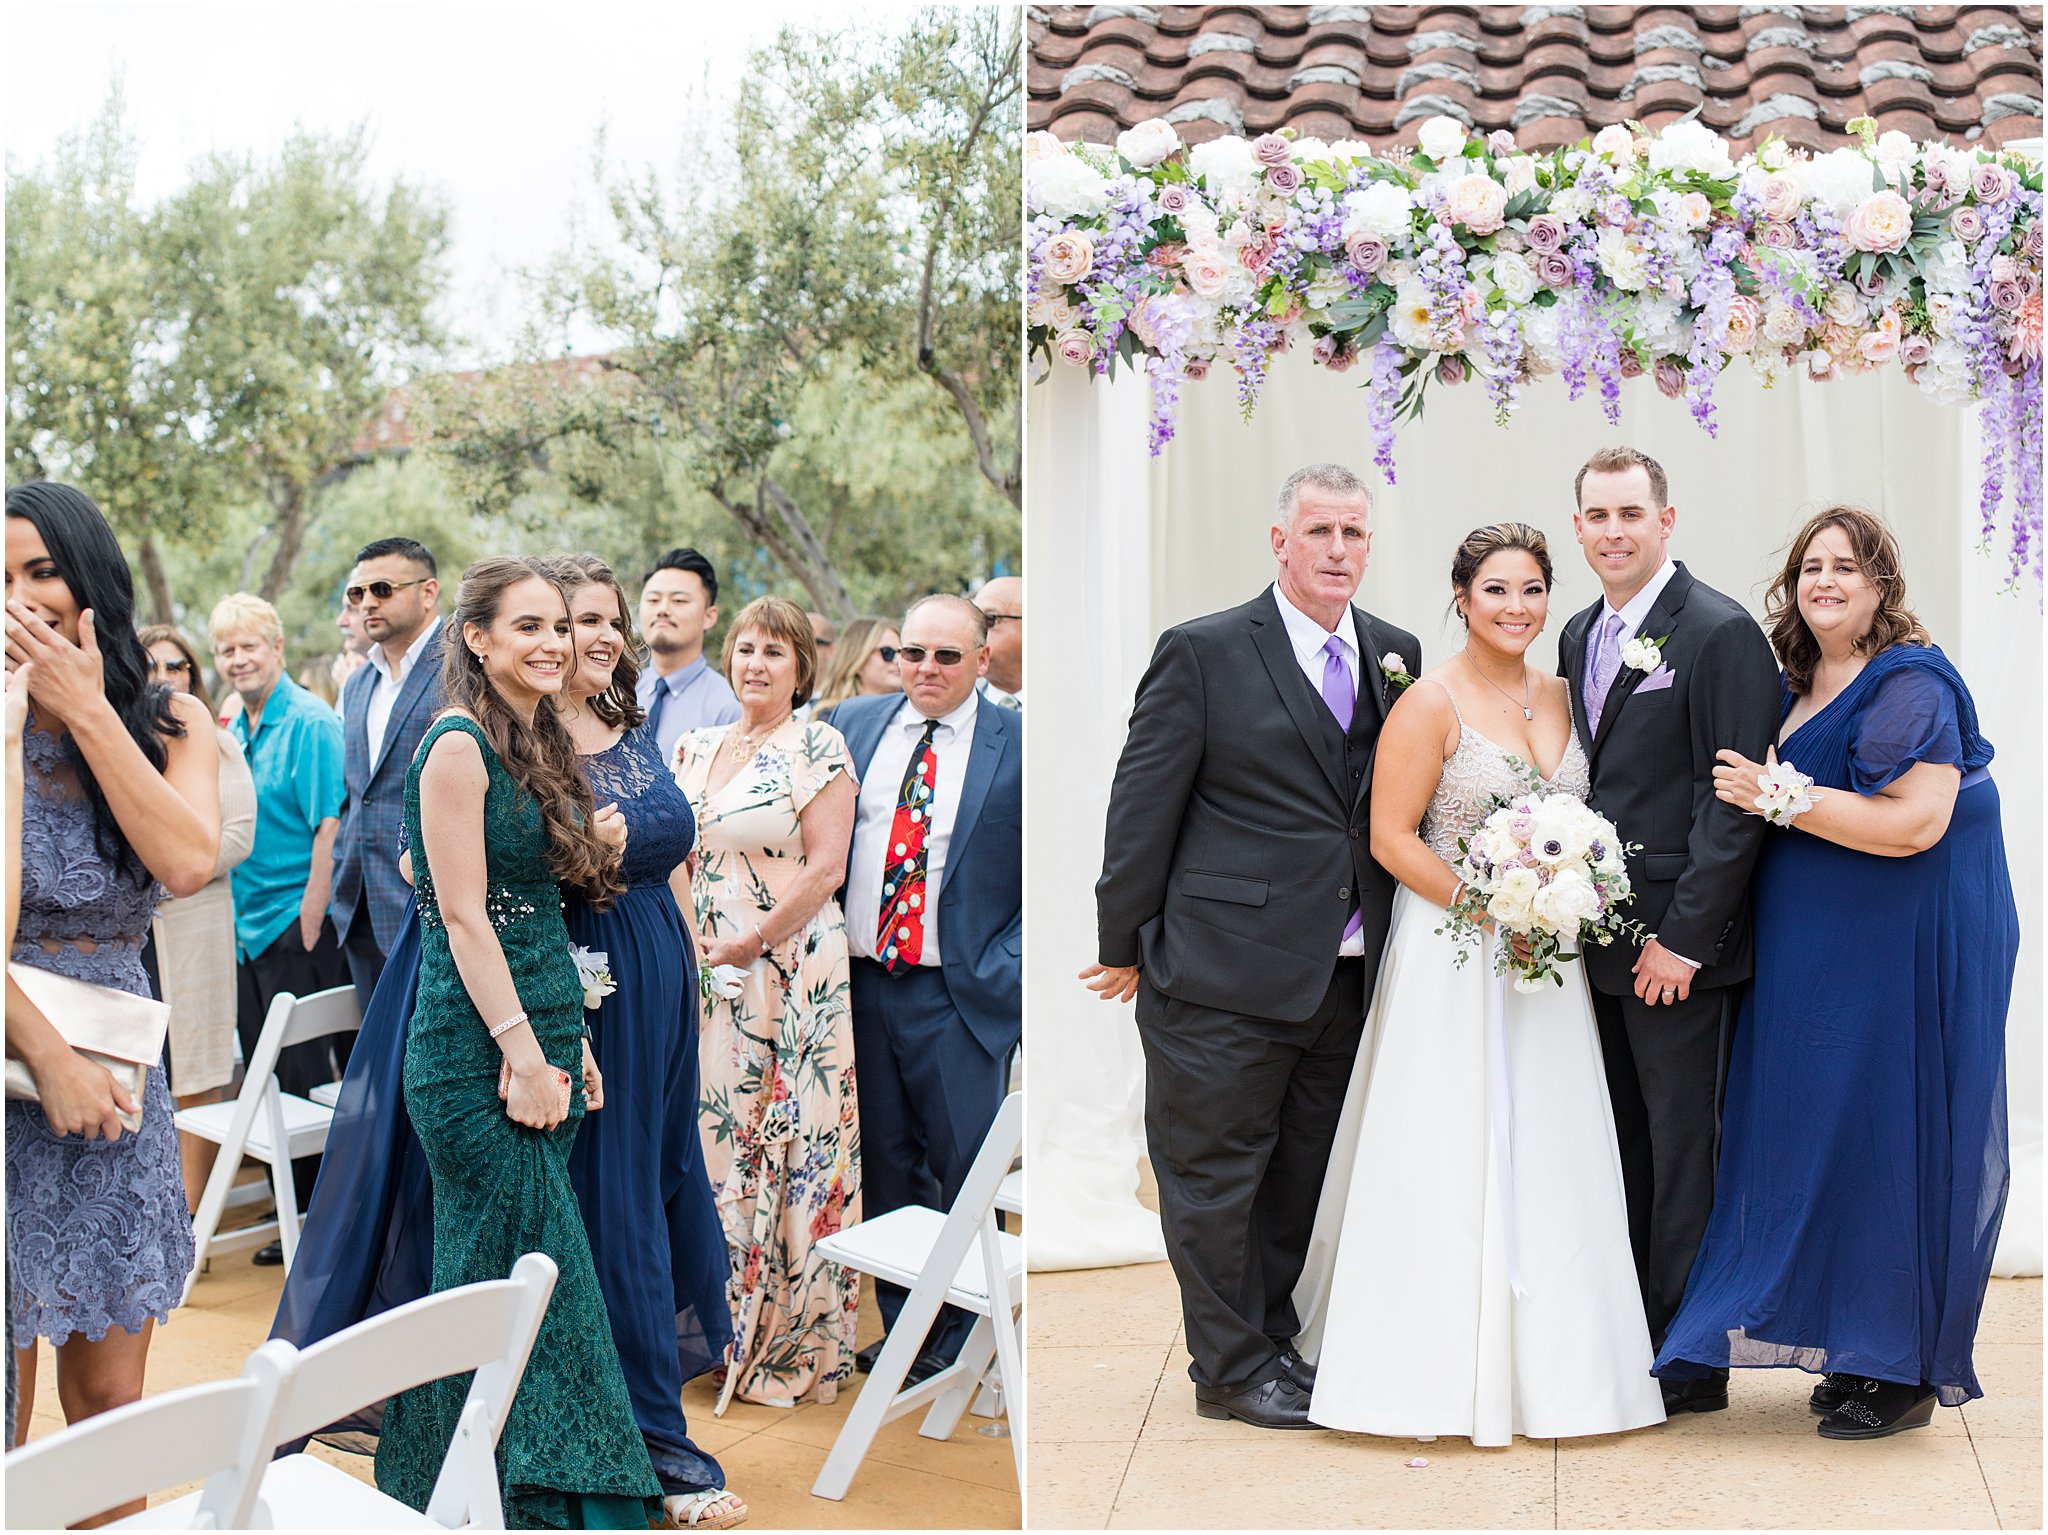 2019 wedding san juan bautista hacienda de leal vineyards bay area wedding photographer_0054.jpg